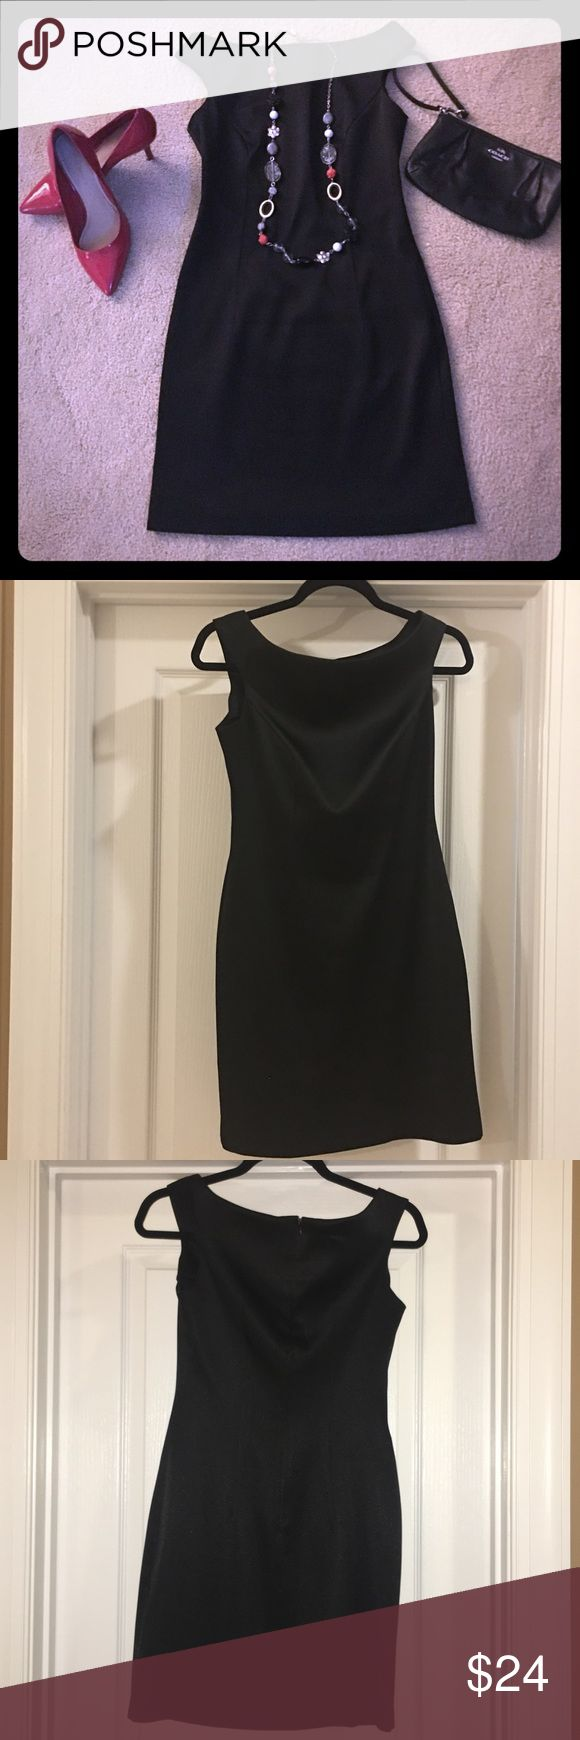 Chinese Laundry Petite Black Mini Dress Such a classic...every girl needs the perfect LBD! Amazingly strategic darting around the bust and in the back. This style will never be passé! EUC Chinese Laundry Dresses Mini